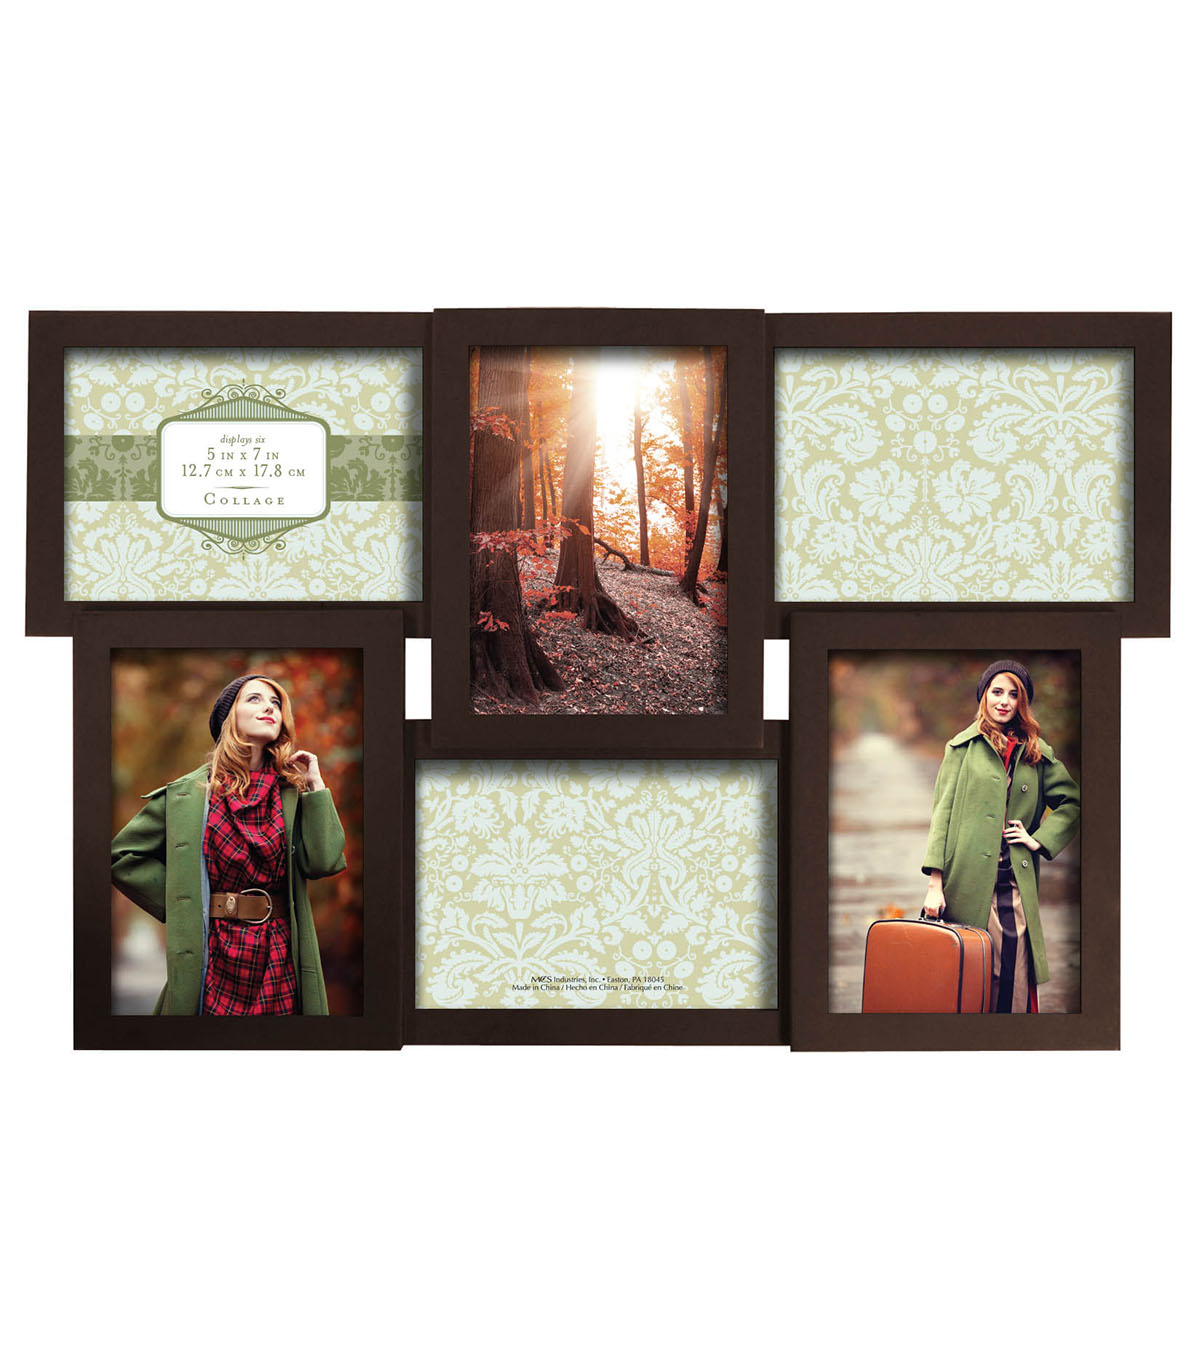 Collage Wall Frame 6 5X7 Openings-Dimensional Walnut